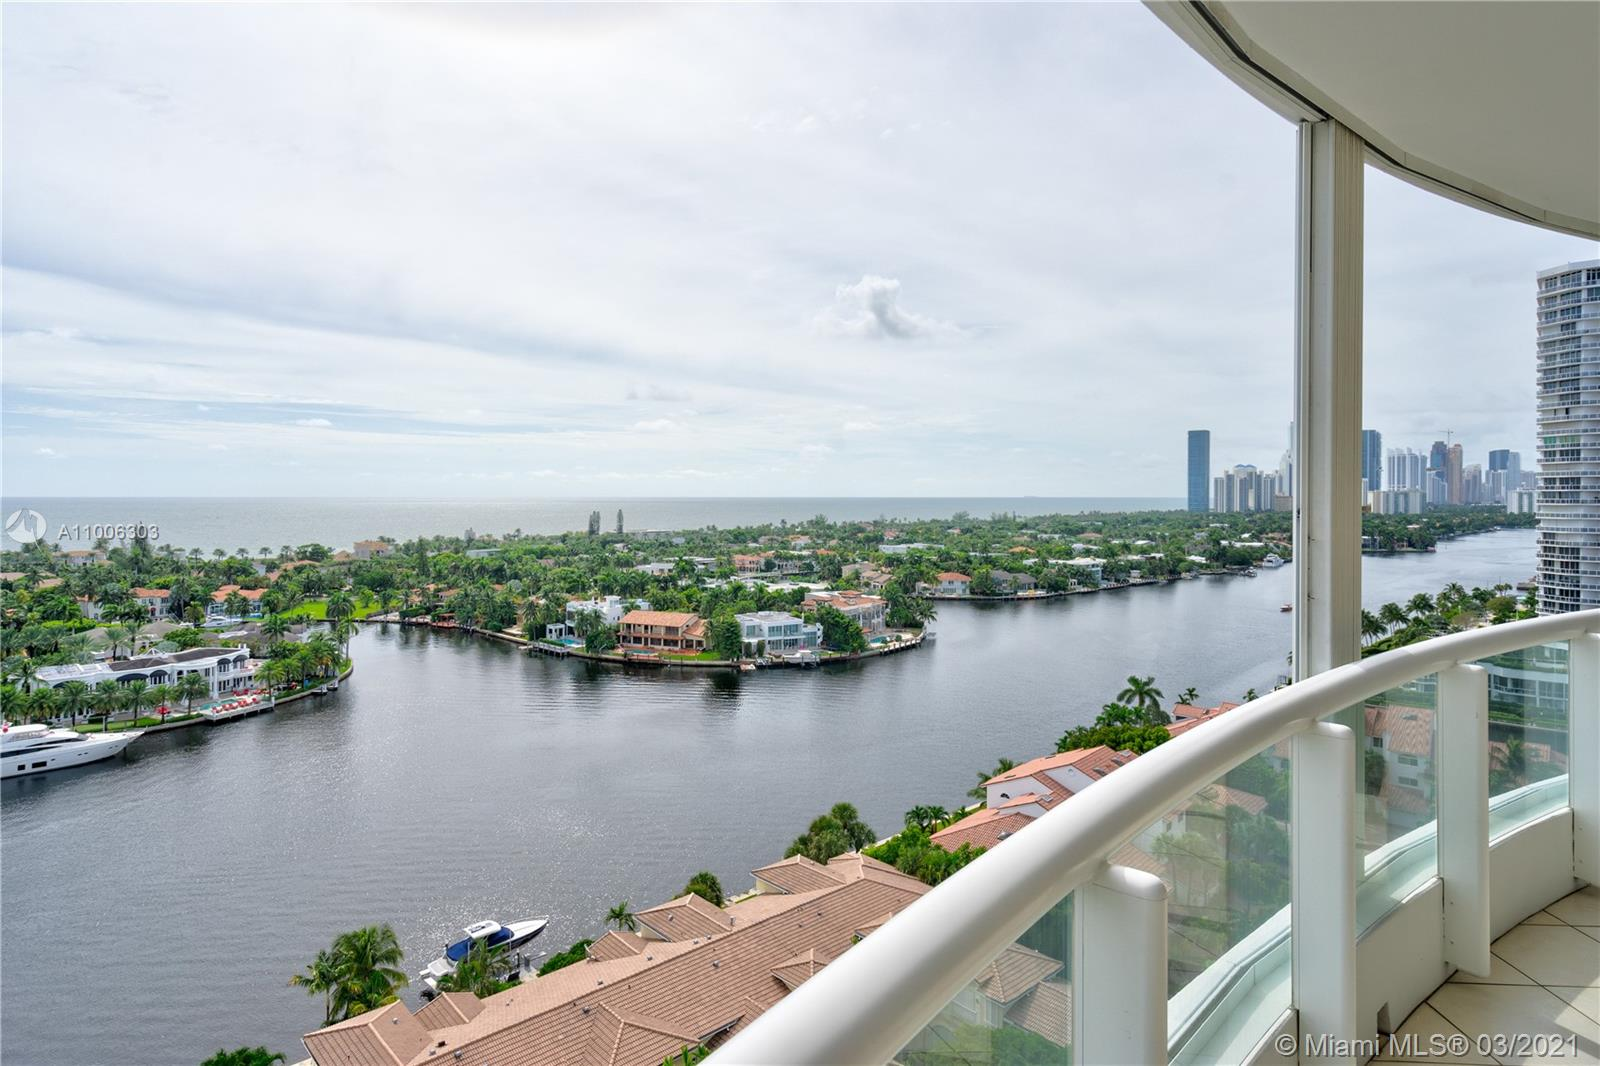 It's all about the view!! largest condo for sale at Atlantic III, this unit features of 3,400 sft. of living space, 4 bedrooms, 4.5 bathrooms with wraparound balcony overlooking the intracoastal and the ocean. Private elevator takes you directly to this unit. Open kitchen with top of the line appliances. Spectacular state of the art clubhouse, 3 pools, restaurants, marina, gym sauna, theater, BBQ area, tennis courts, towel service, 24 hr security, reception & valet.